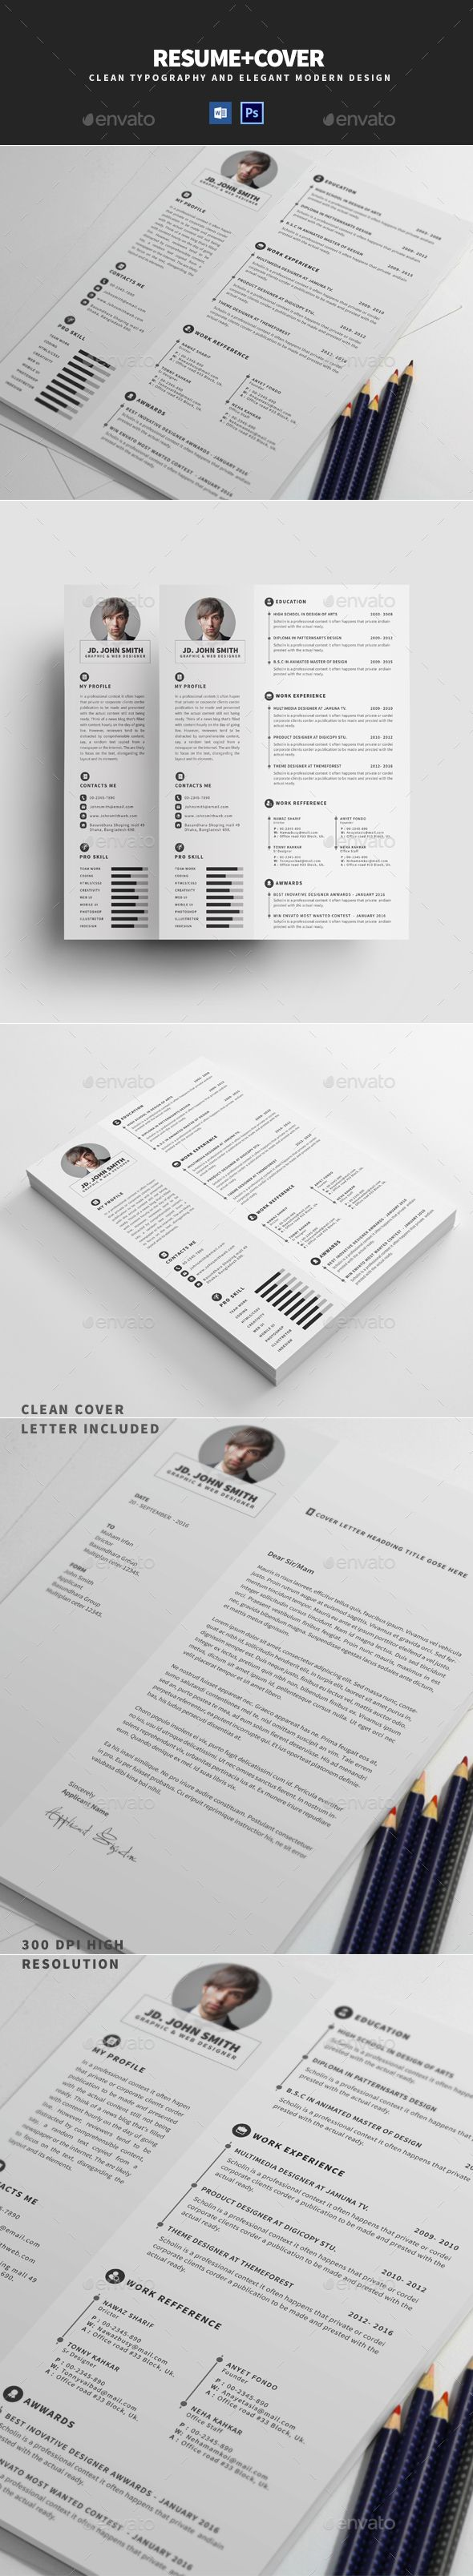 Resume 237 best CV images on Pinterest